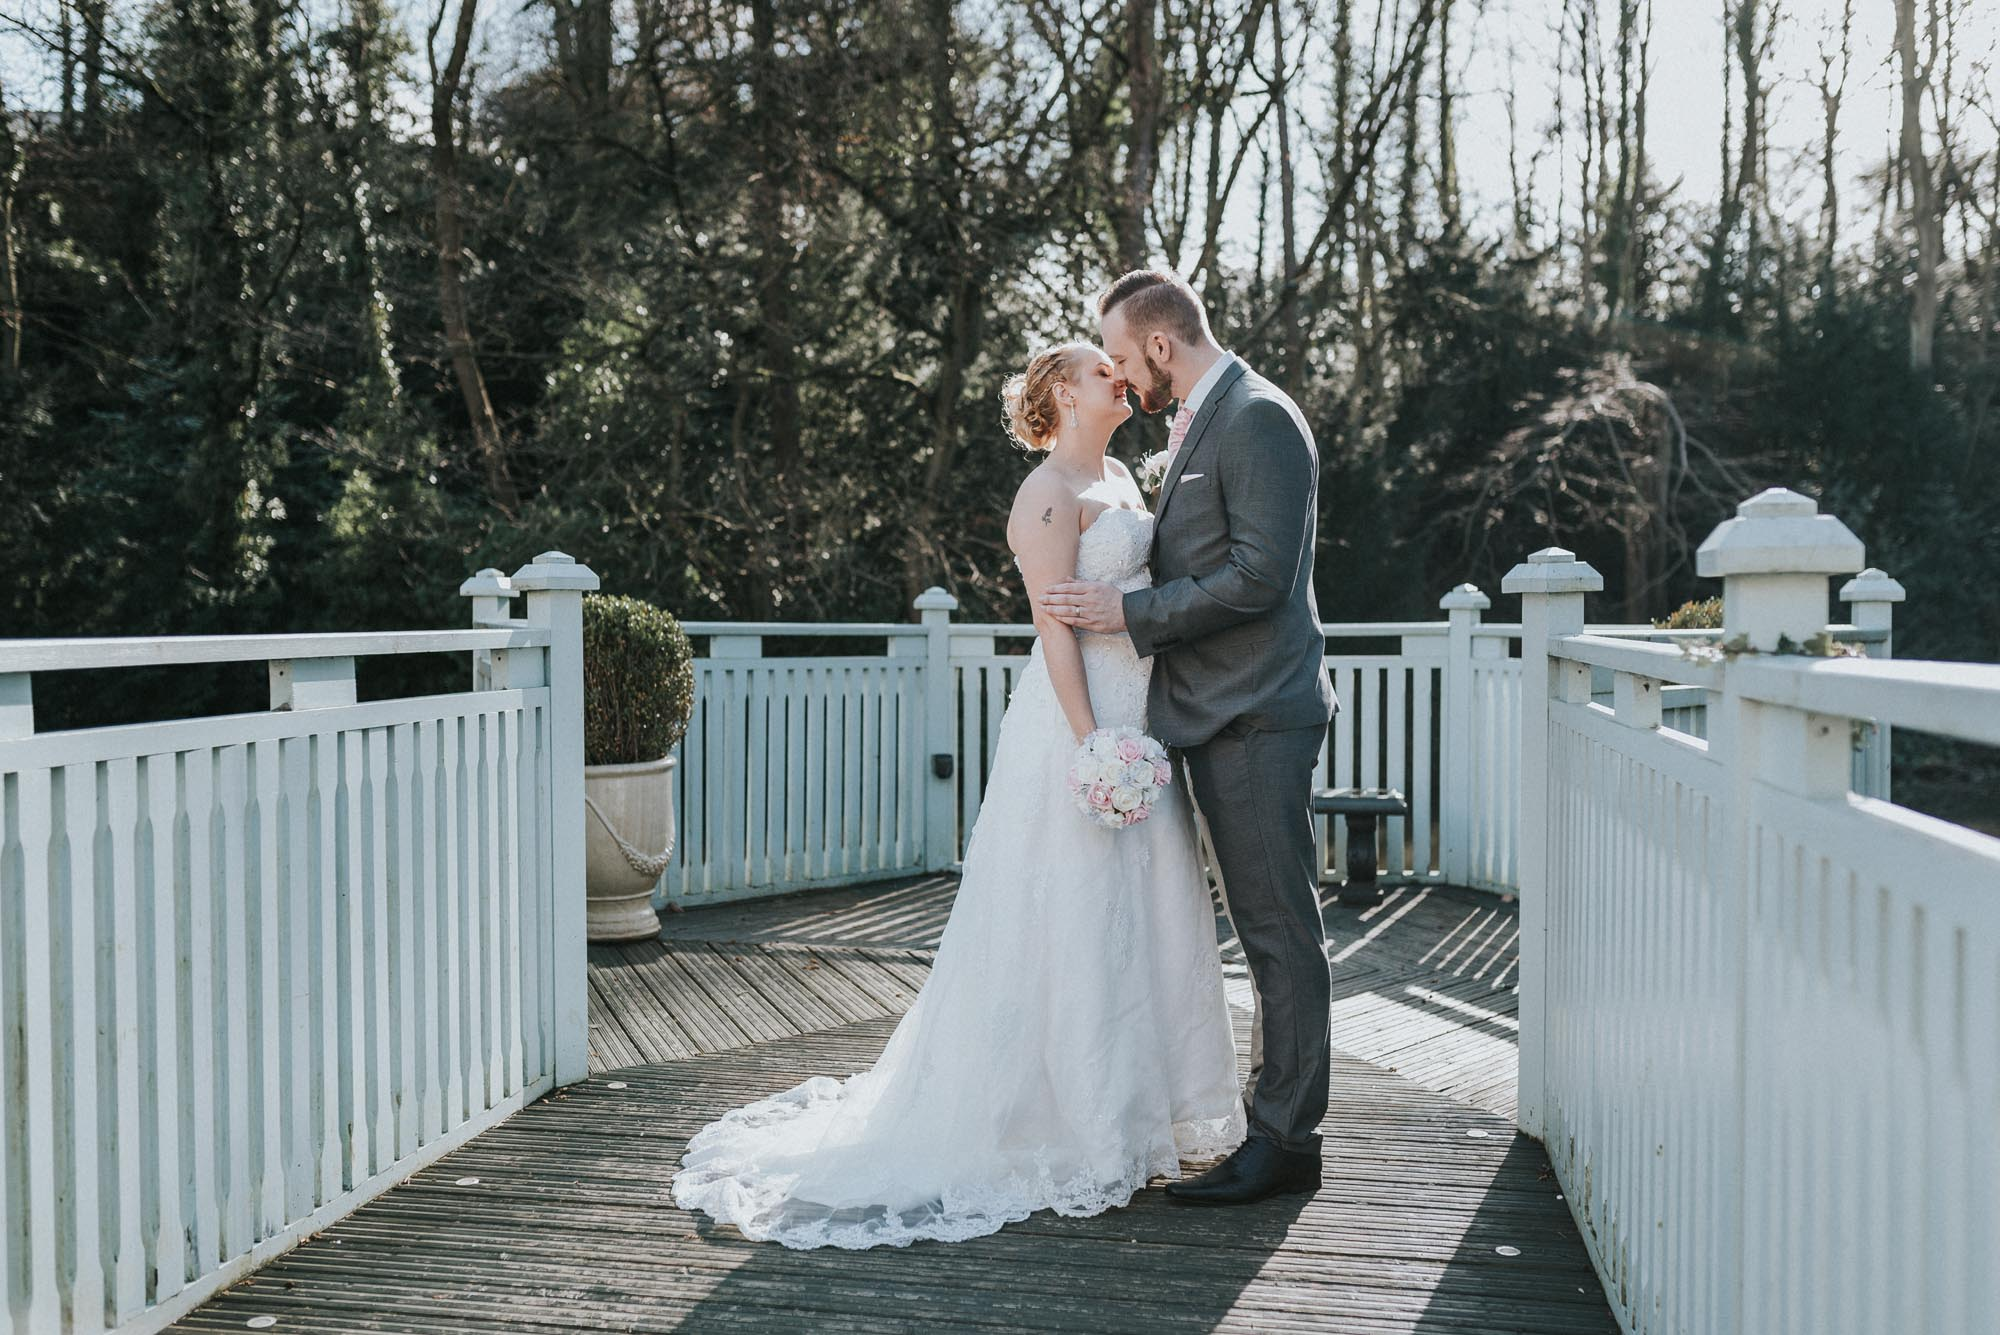 Whitley Hall Hotel Wedding